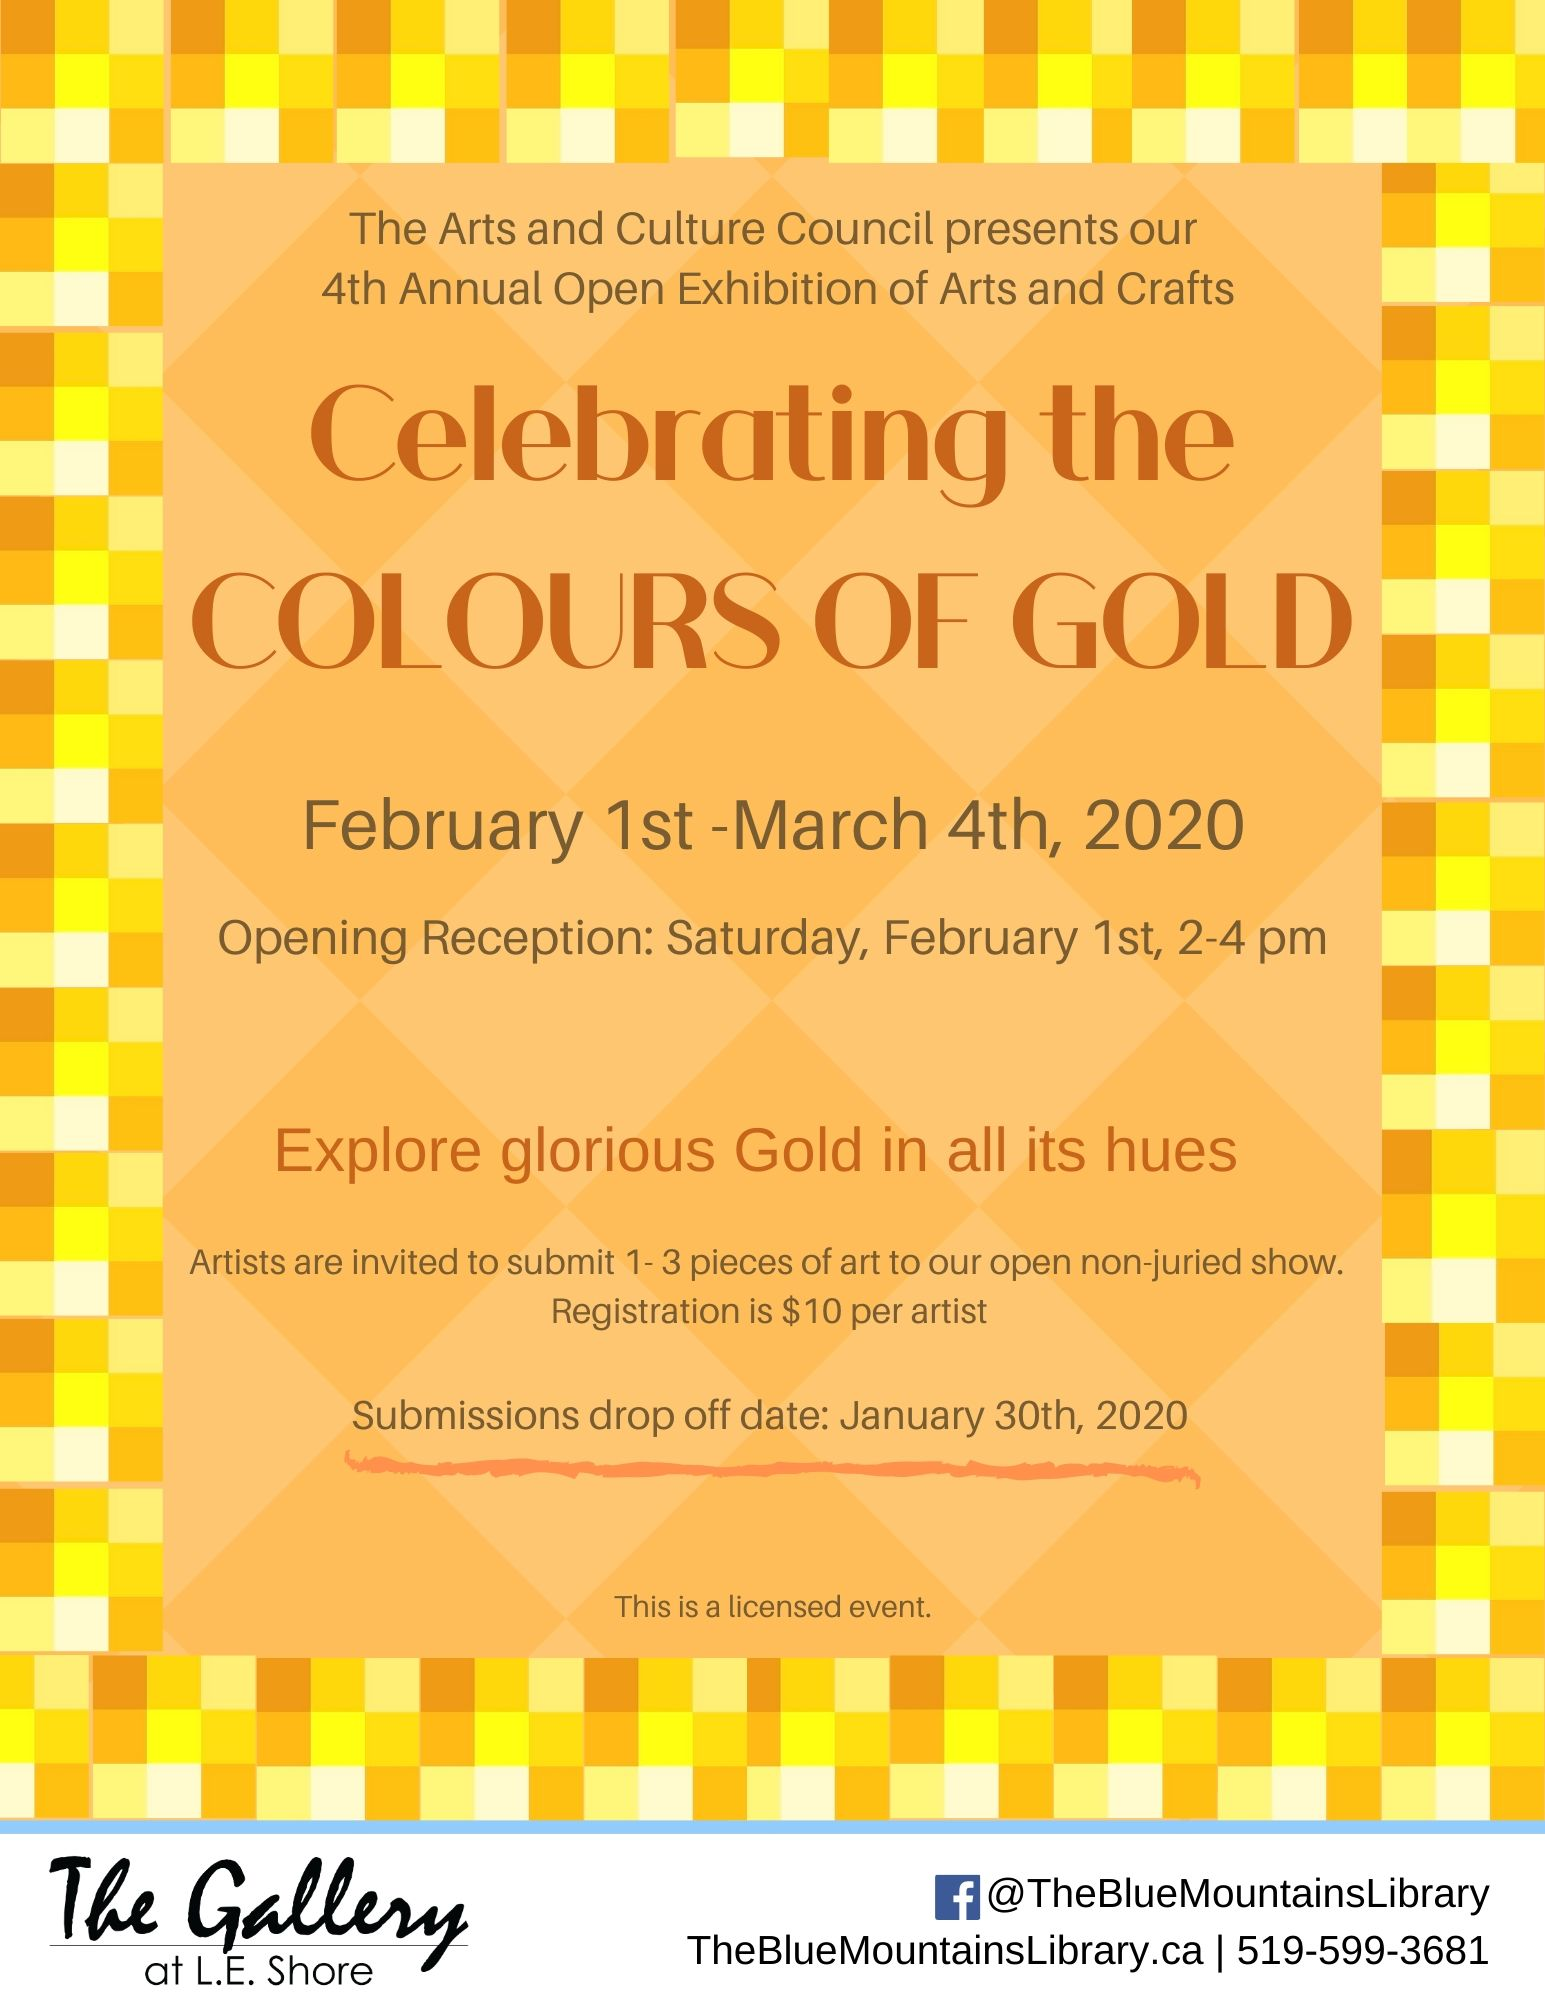 CELEBRATING THE COLOURS OF GOLD in FEBRUARY!